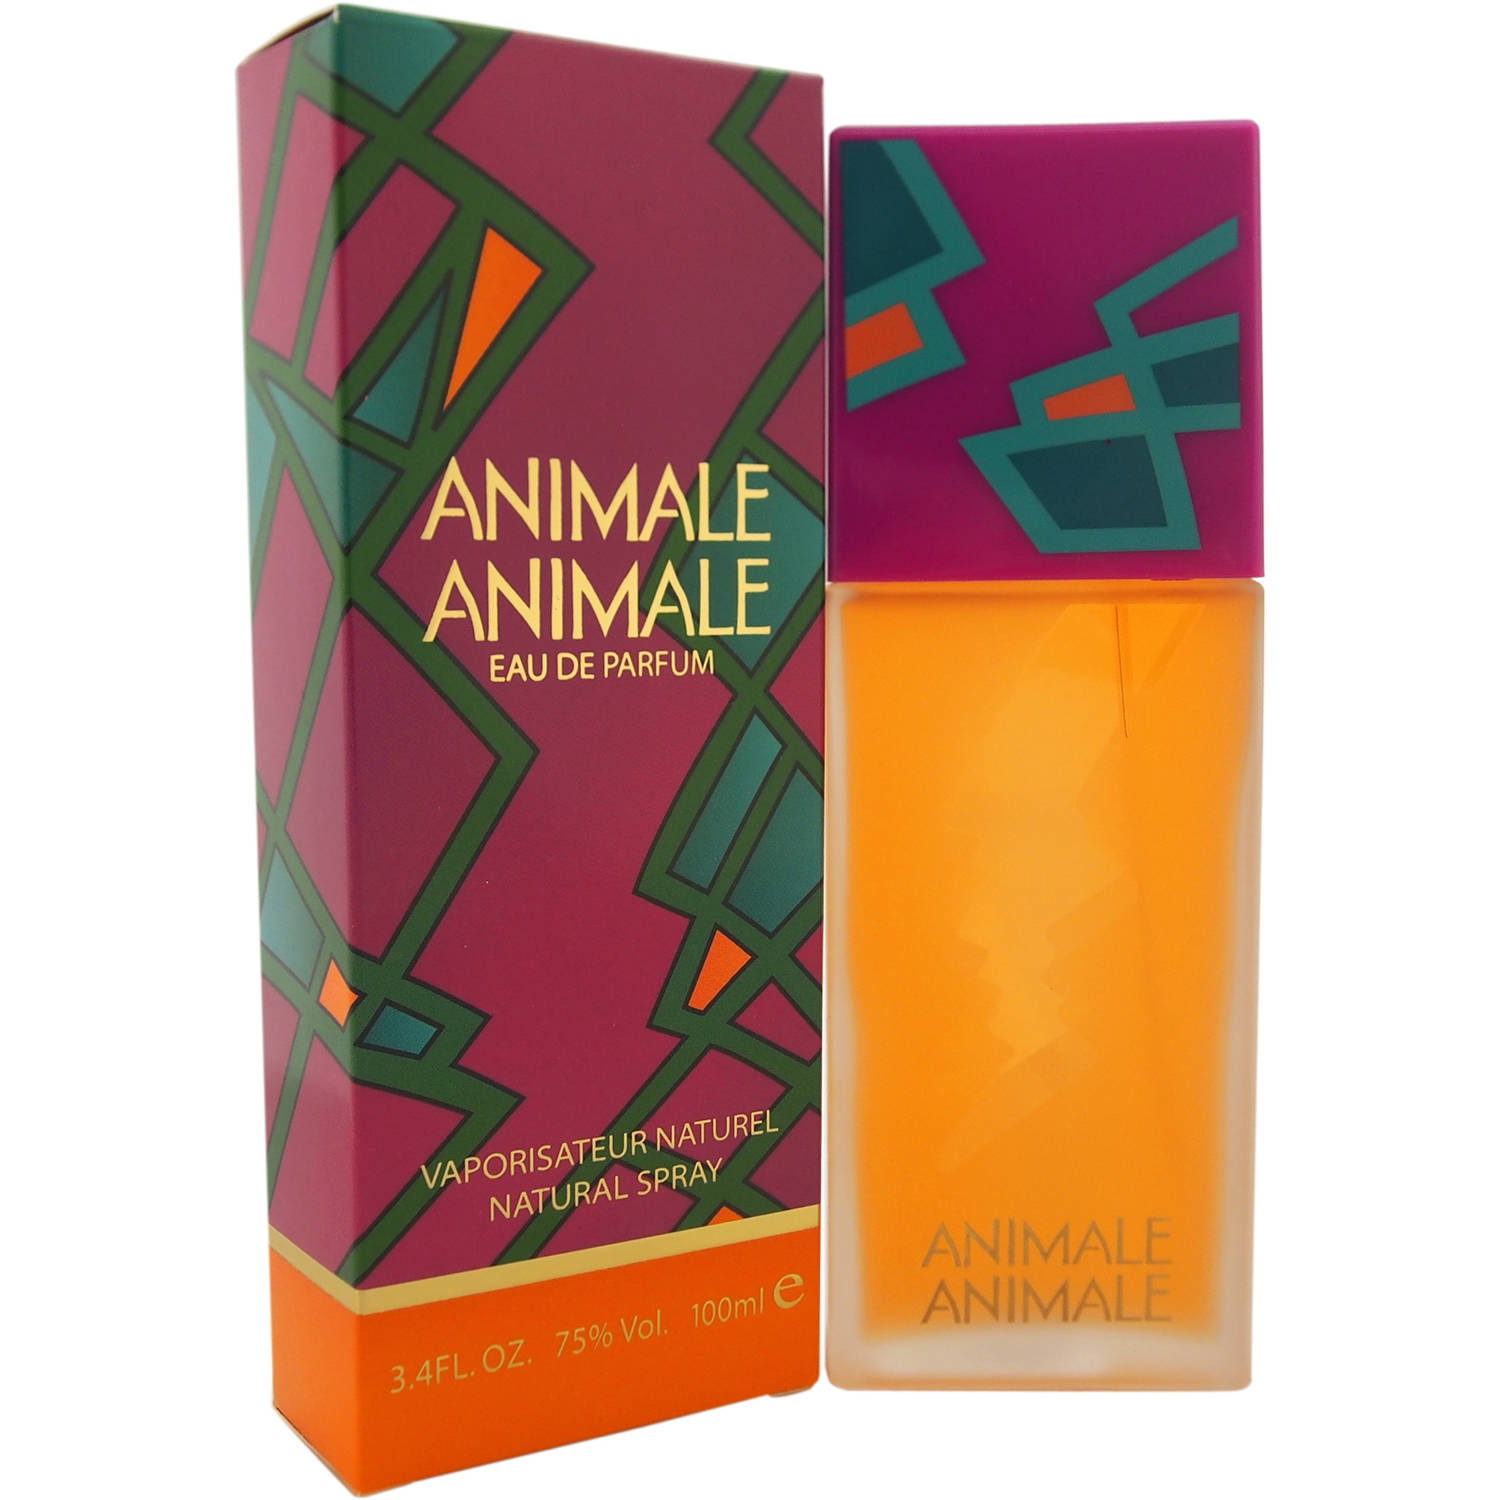 Animale Animale by Animale for Women EDP Spray, 3.4 oz